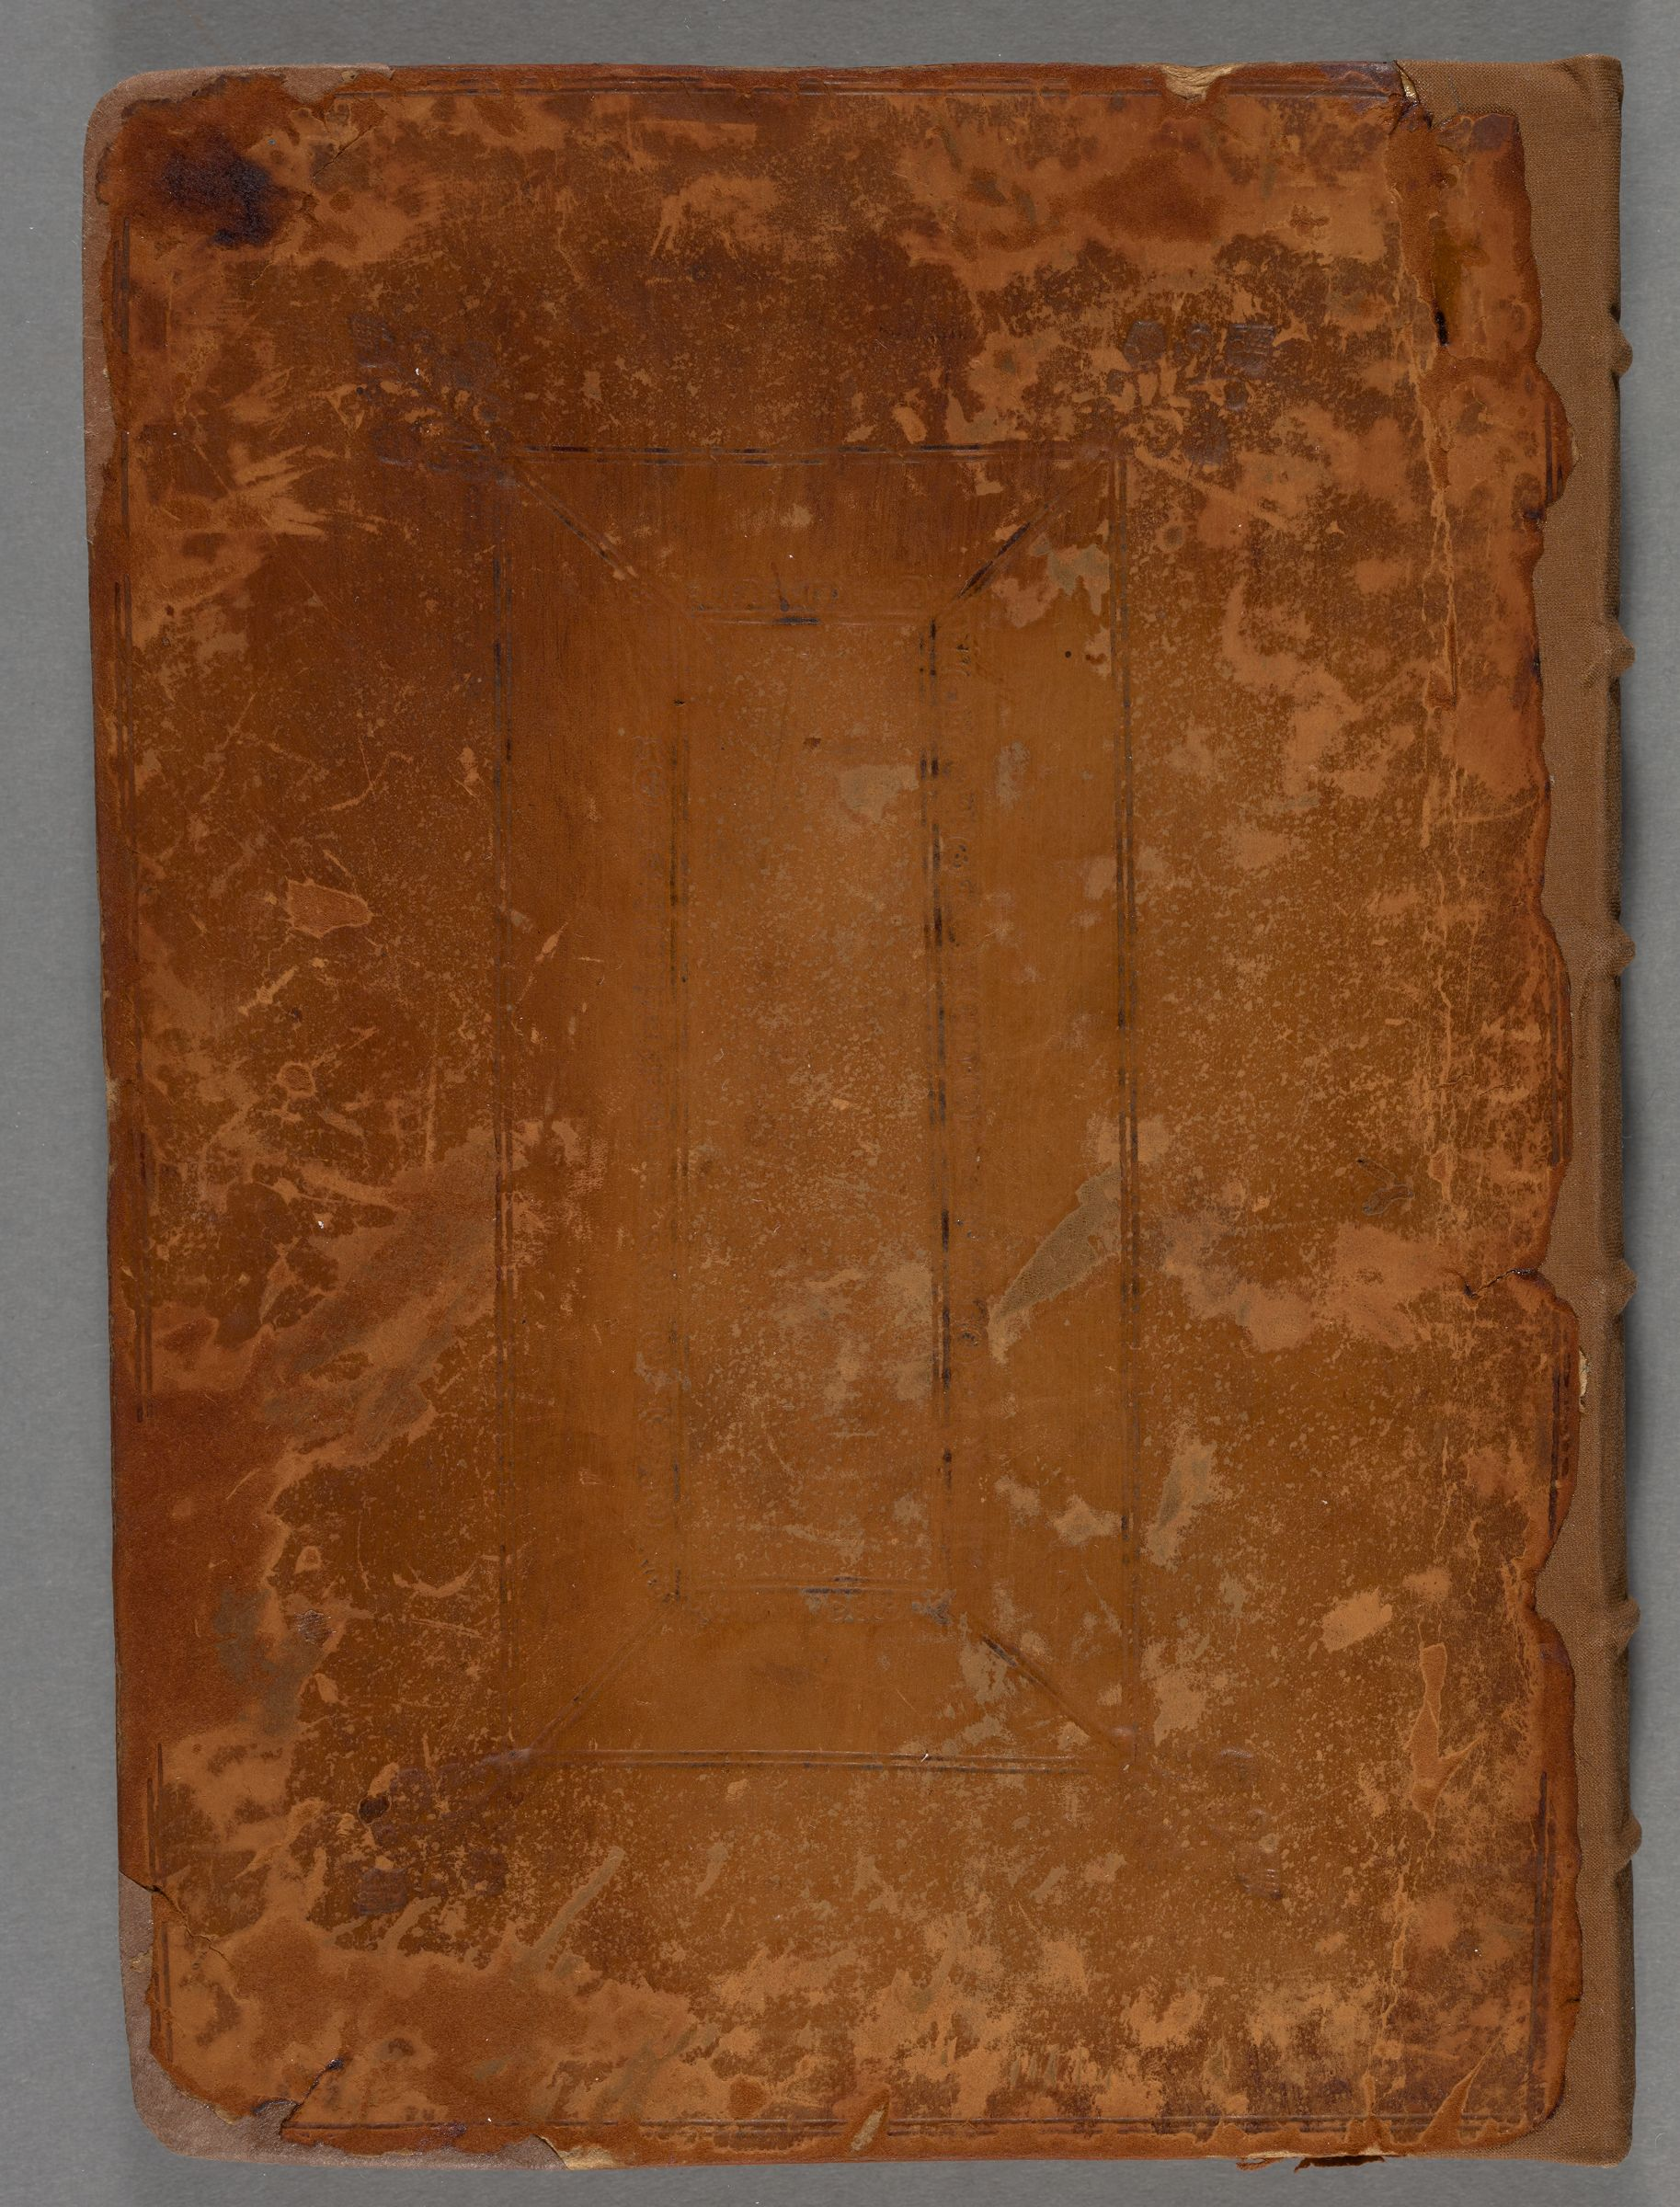 Rabbinical manuscripts of Judah Monis, ca. 1700s